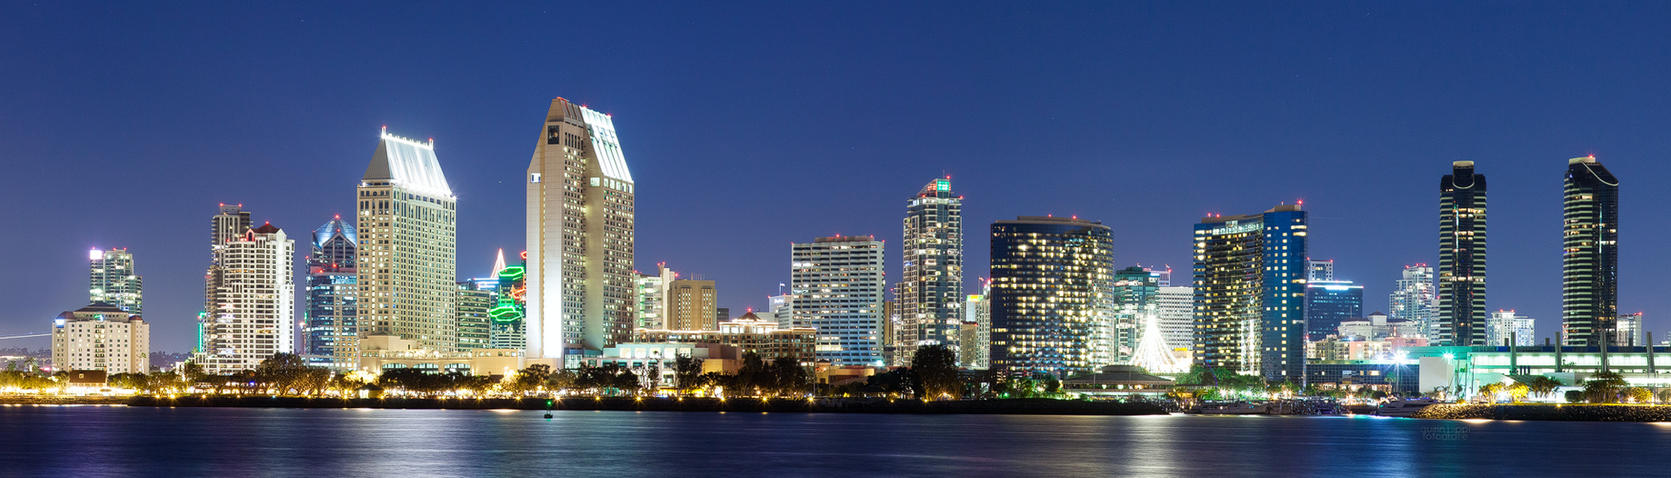 San Diego Downtown Skyline by quintz